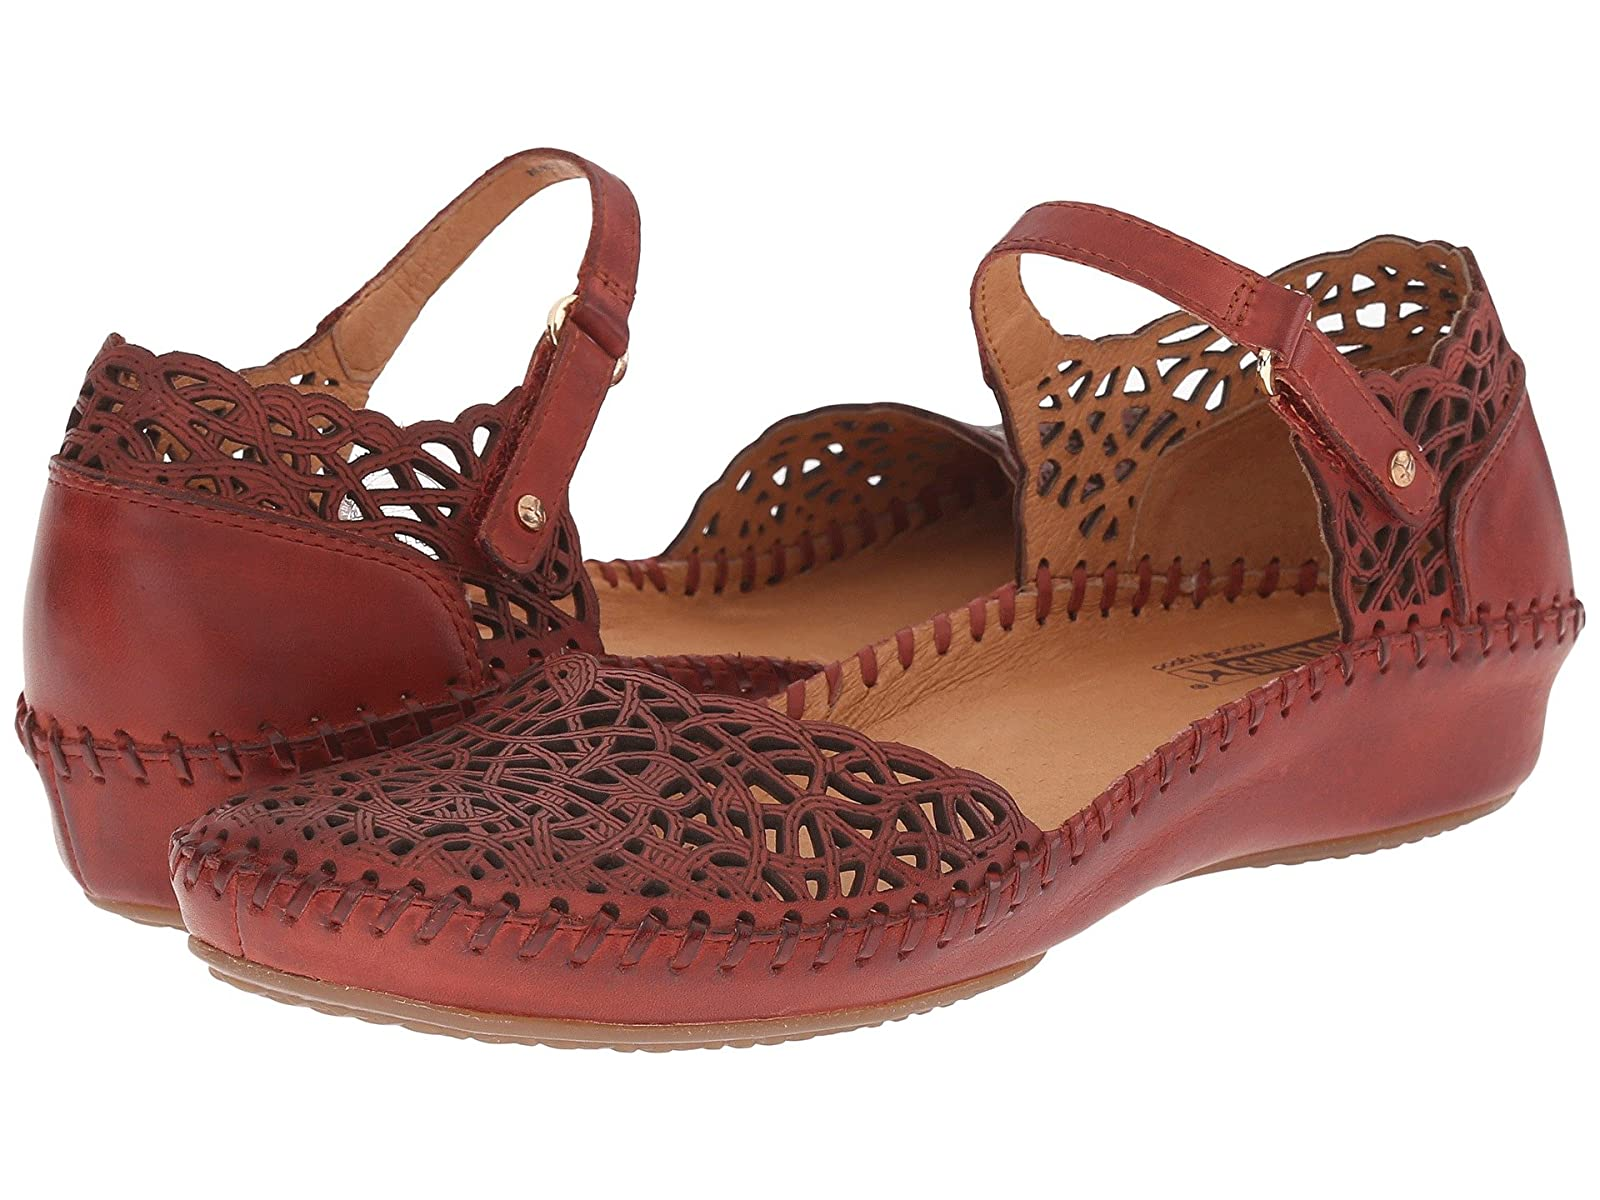 Pikolinos Puerto Vallarta 655-1532Atmospheric grades have affordable shoes